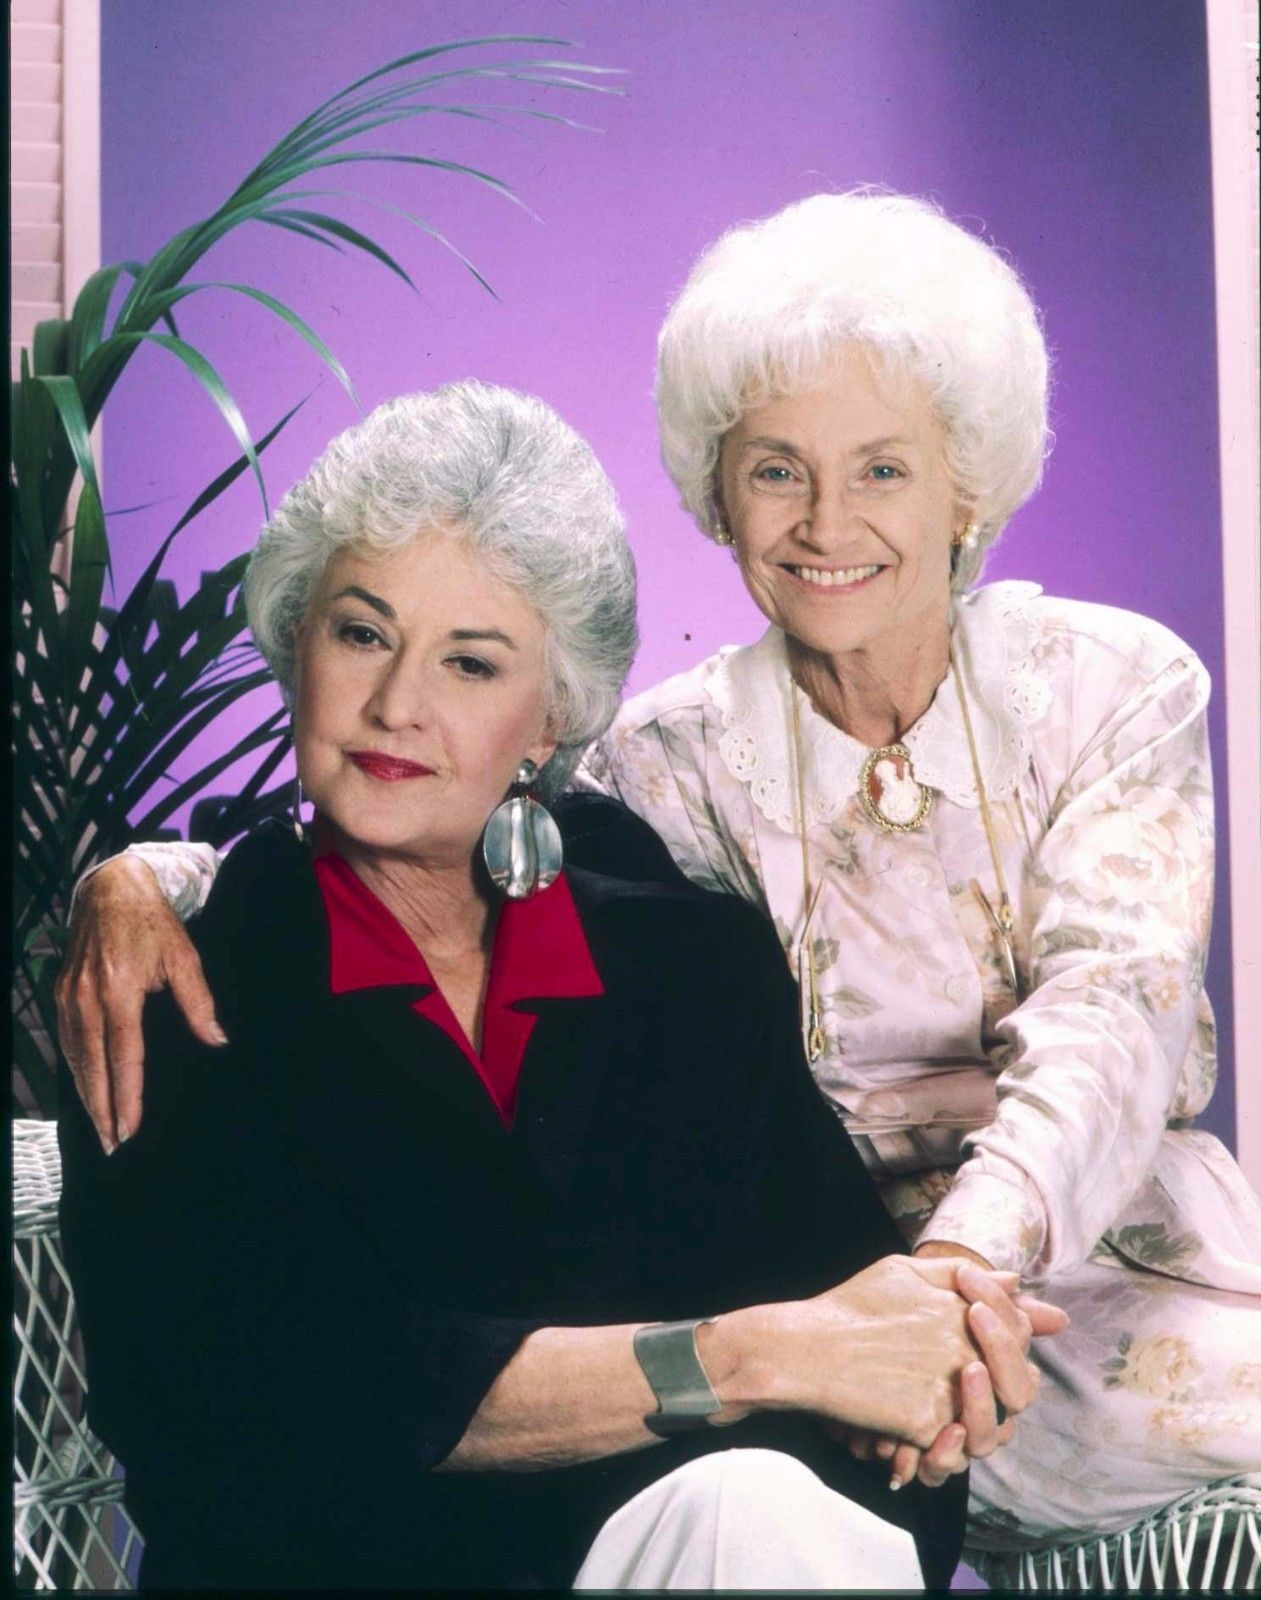 GOLDEN_GIRLS_BEA_ARTHUR_ESTELLE_GETTY_SOPHIA_PETRILLO_1986_TRANSPARENCY_1